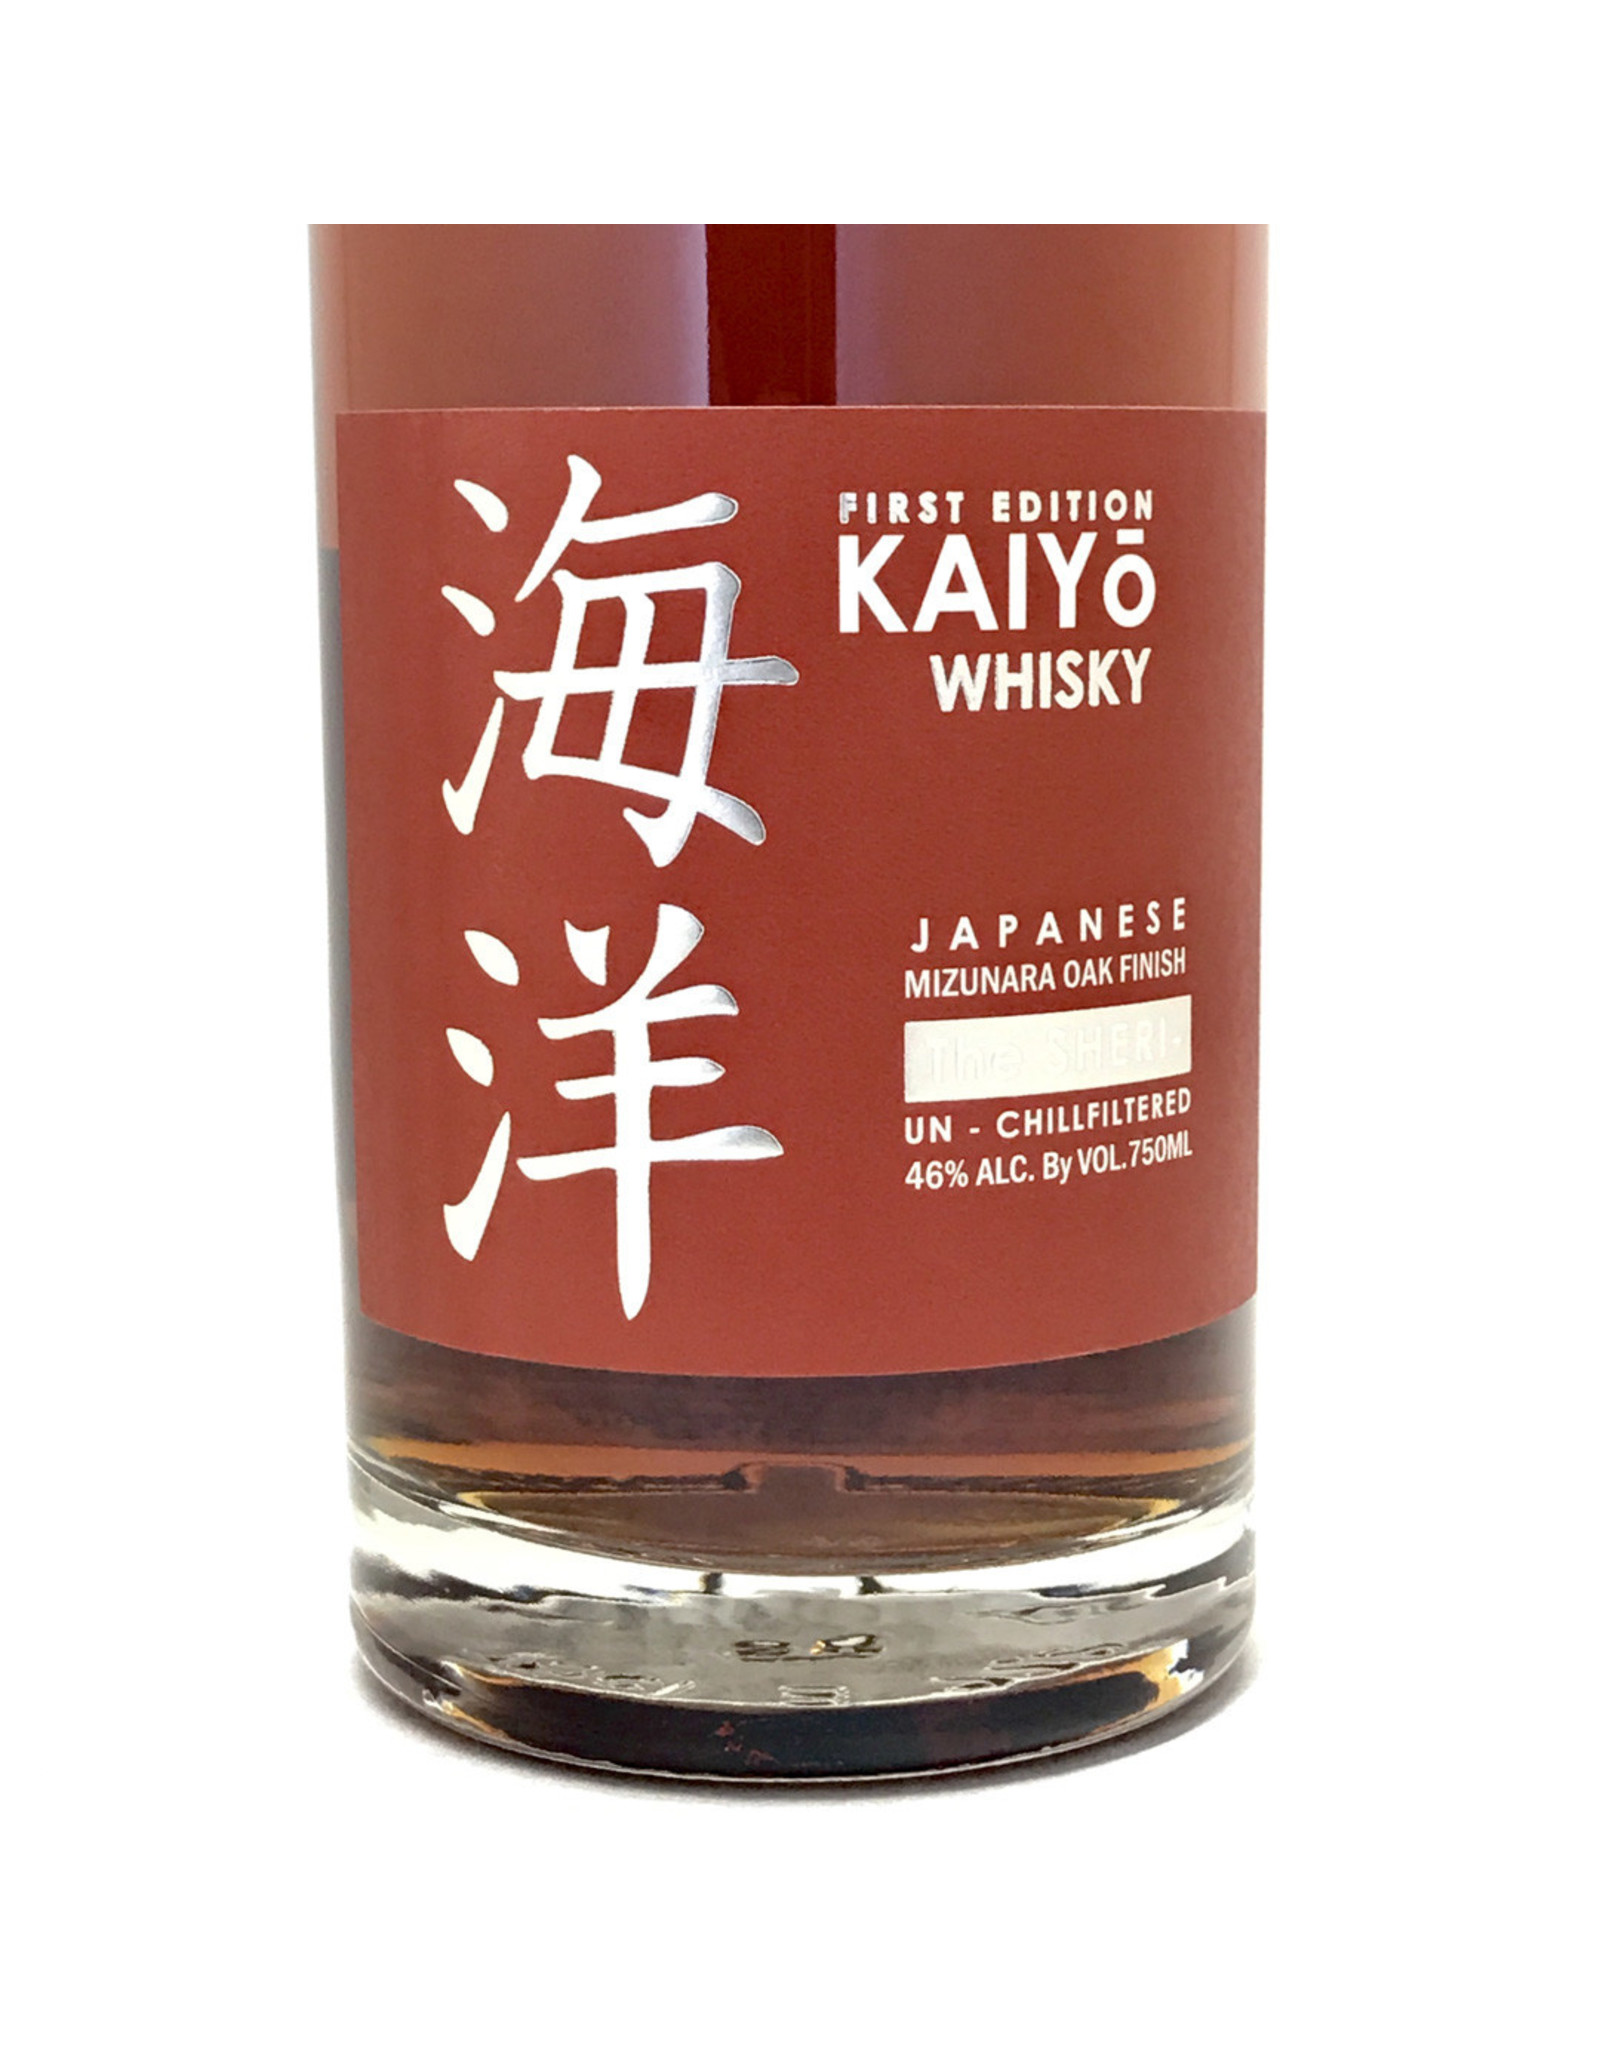 Kaiyo Kaiyo Whisky First Edition - The SHERI